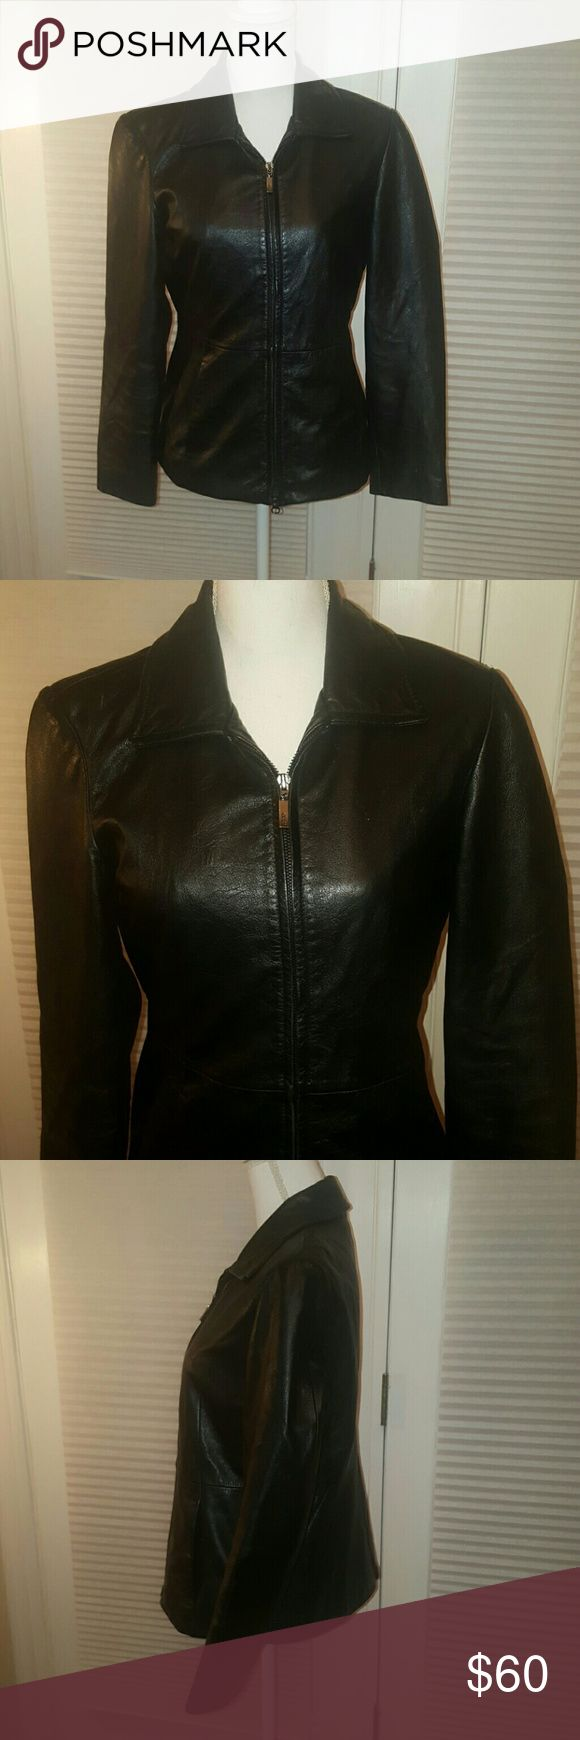 Guess black genuine leather jacket size medium Amazing GUESS genuine black leather zip up jacket. Beautiful soft leather, no signs of wear at all. Size medium. Guess Jackets & Coats